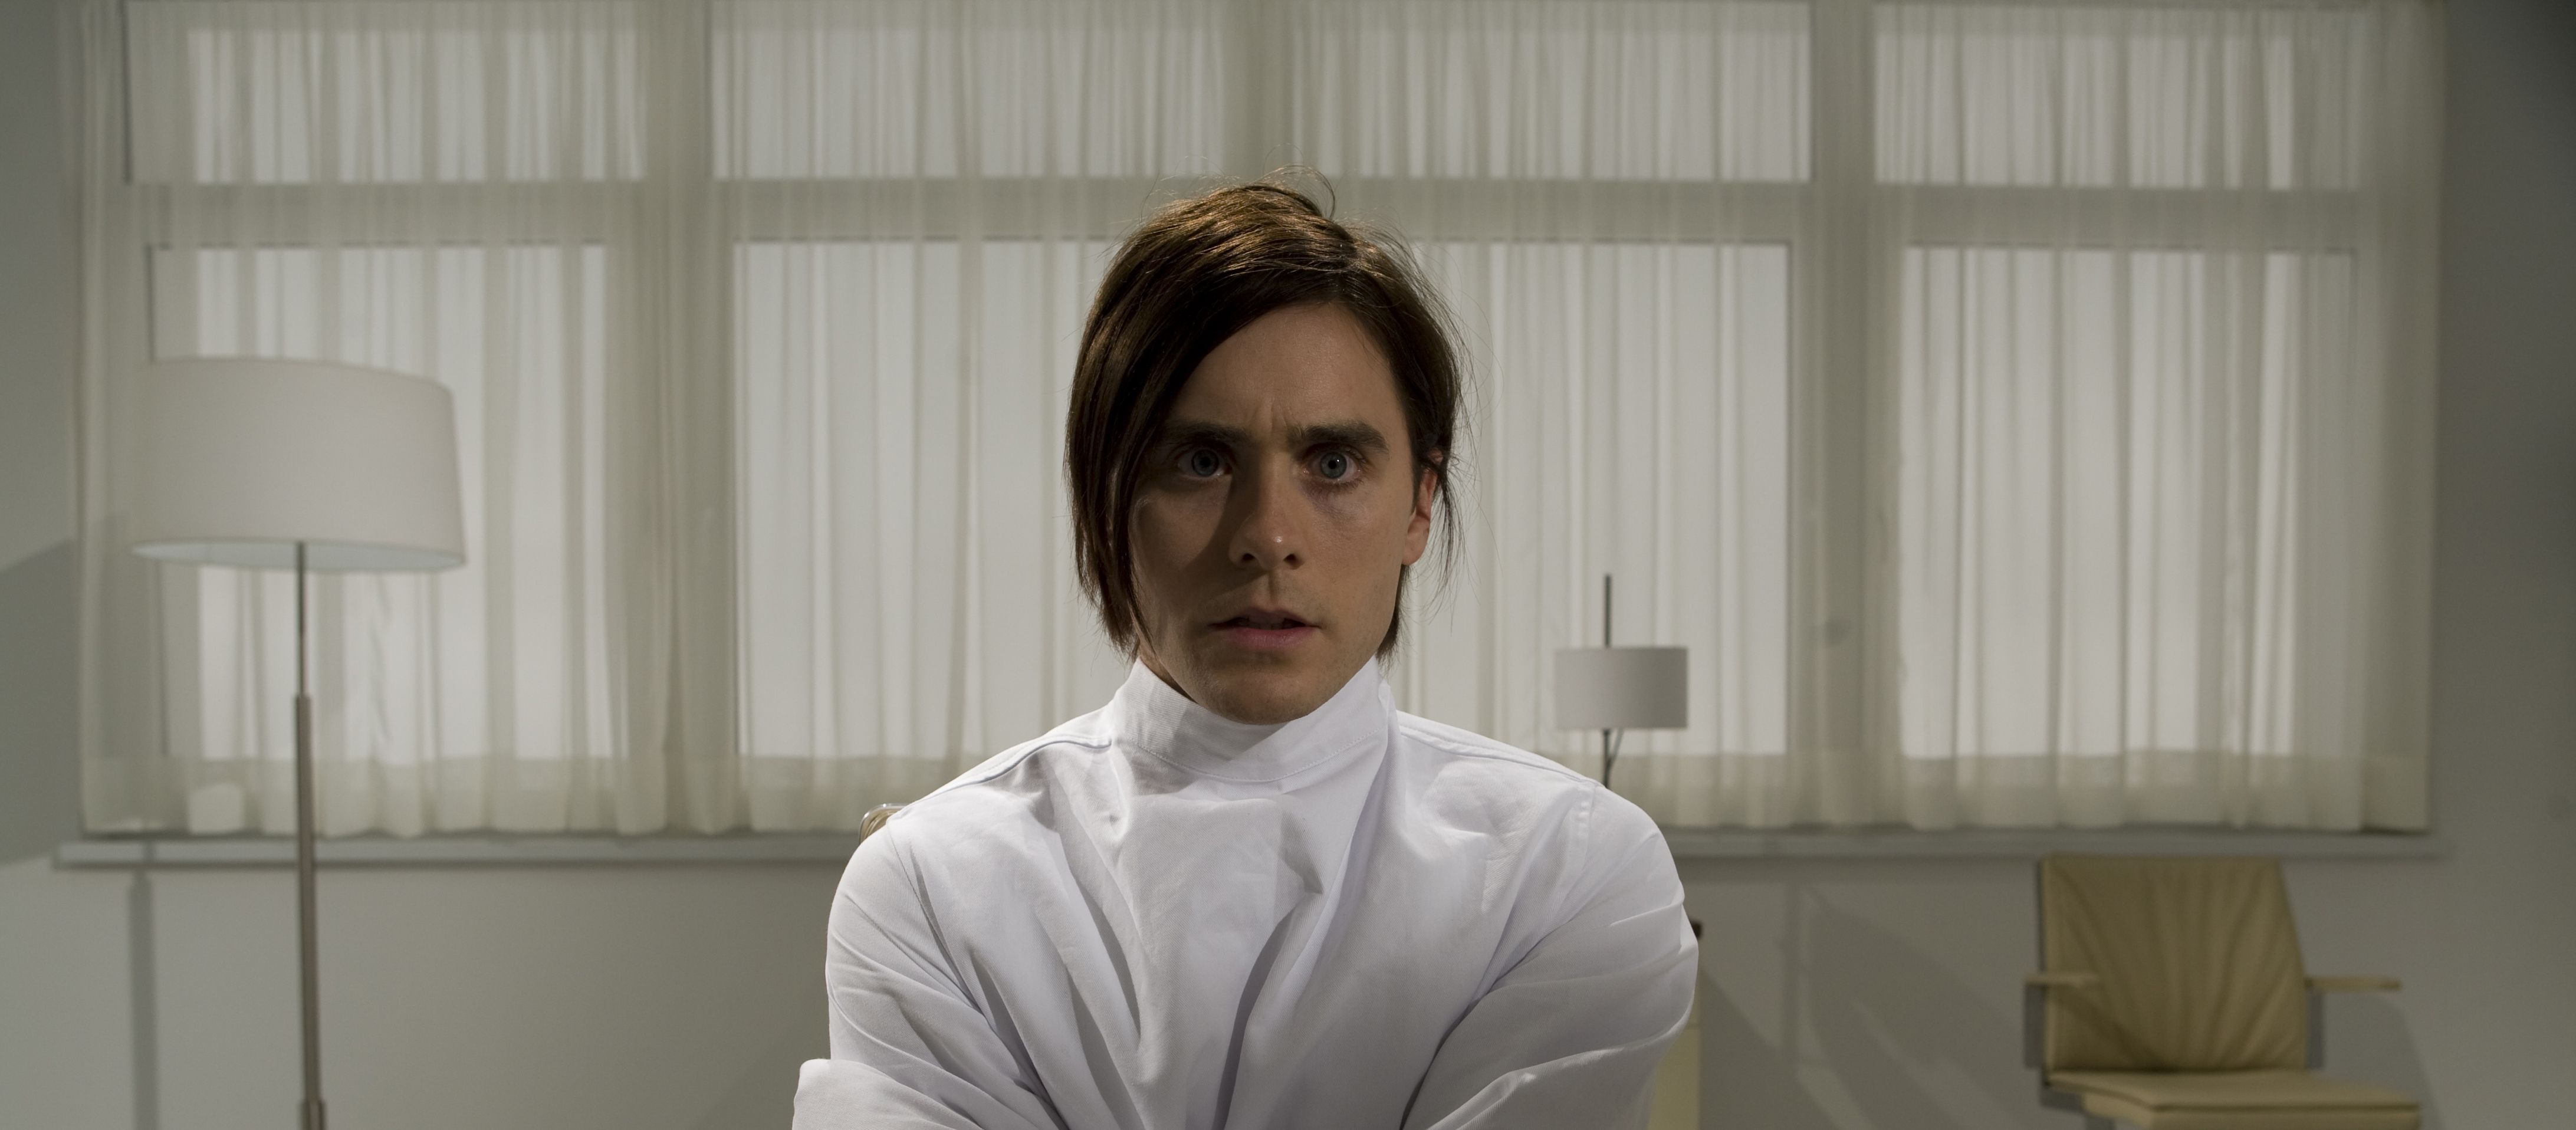 High Resolution Wallpaper | Mr. Nobody 4368x1916 px